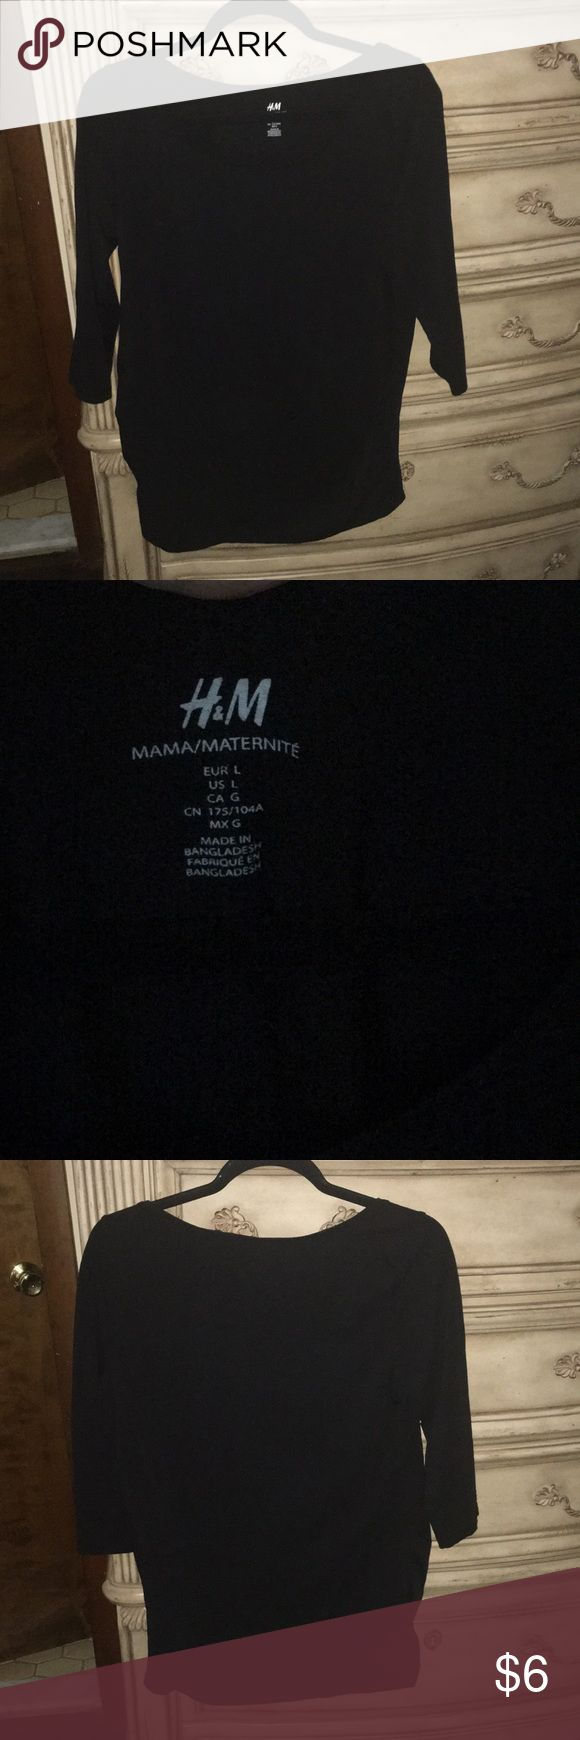 H&M brand 3/4 sleeve maternity shirt H&M brand 3/4 sleeve maternity top ruched sides gently worn. Black. Large. H&M Tops Tees - Short Sleeve